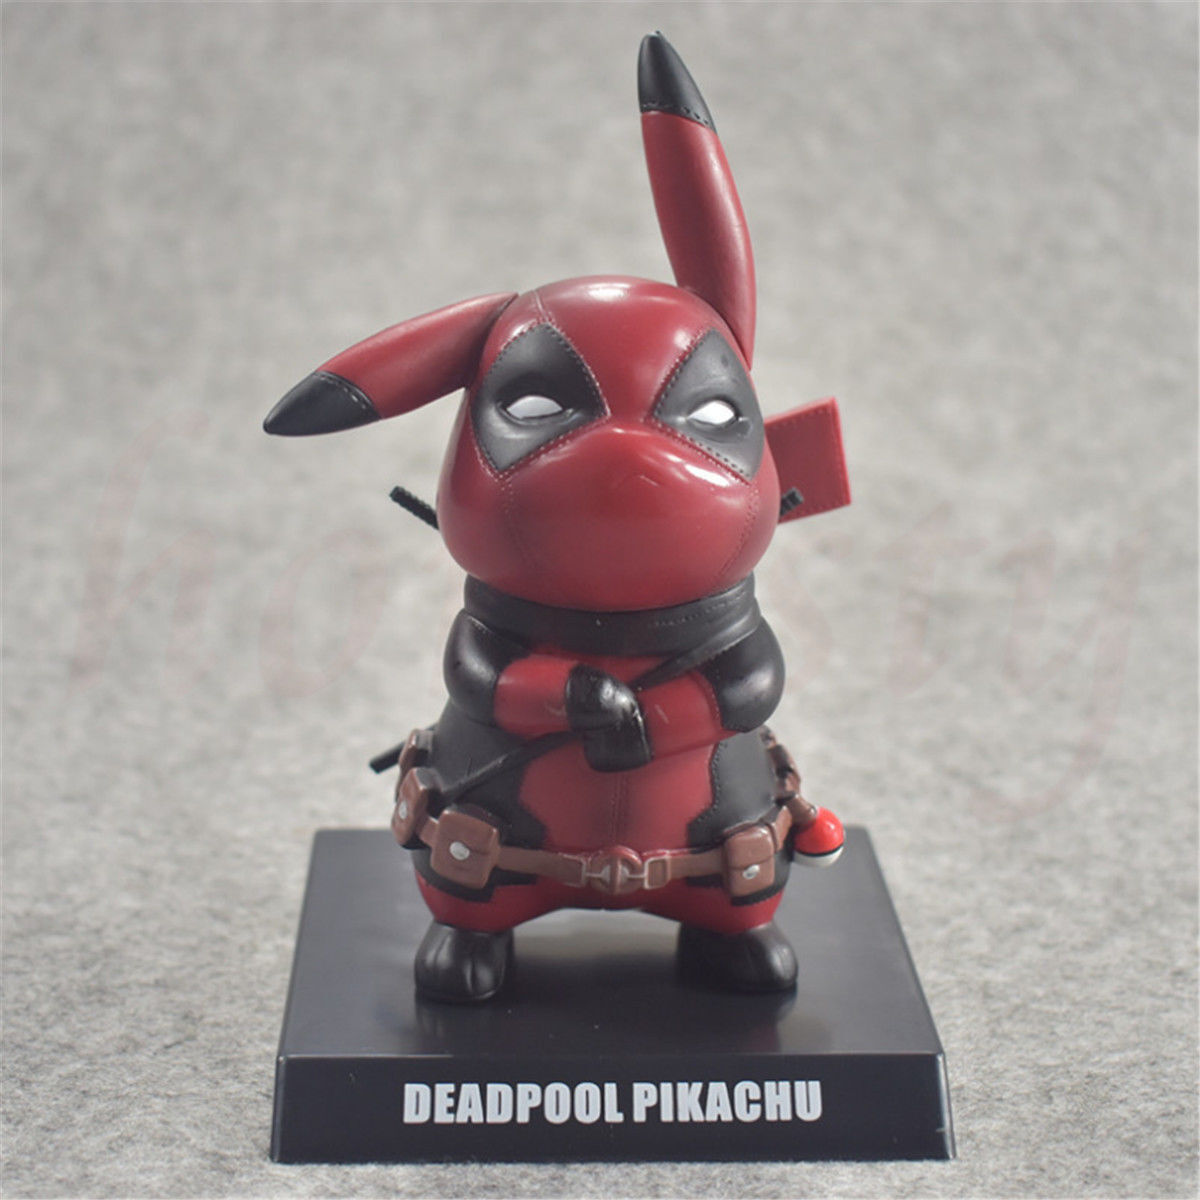 Pikachu Cosplay Deadpool Collectible Figurine Keychain Keyring Toys Gifts